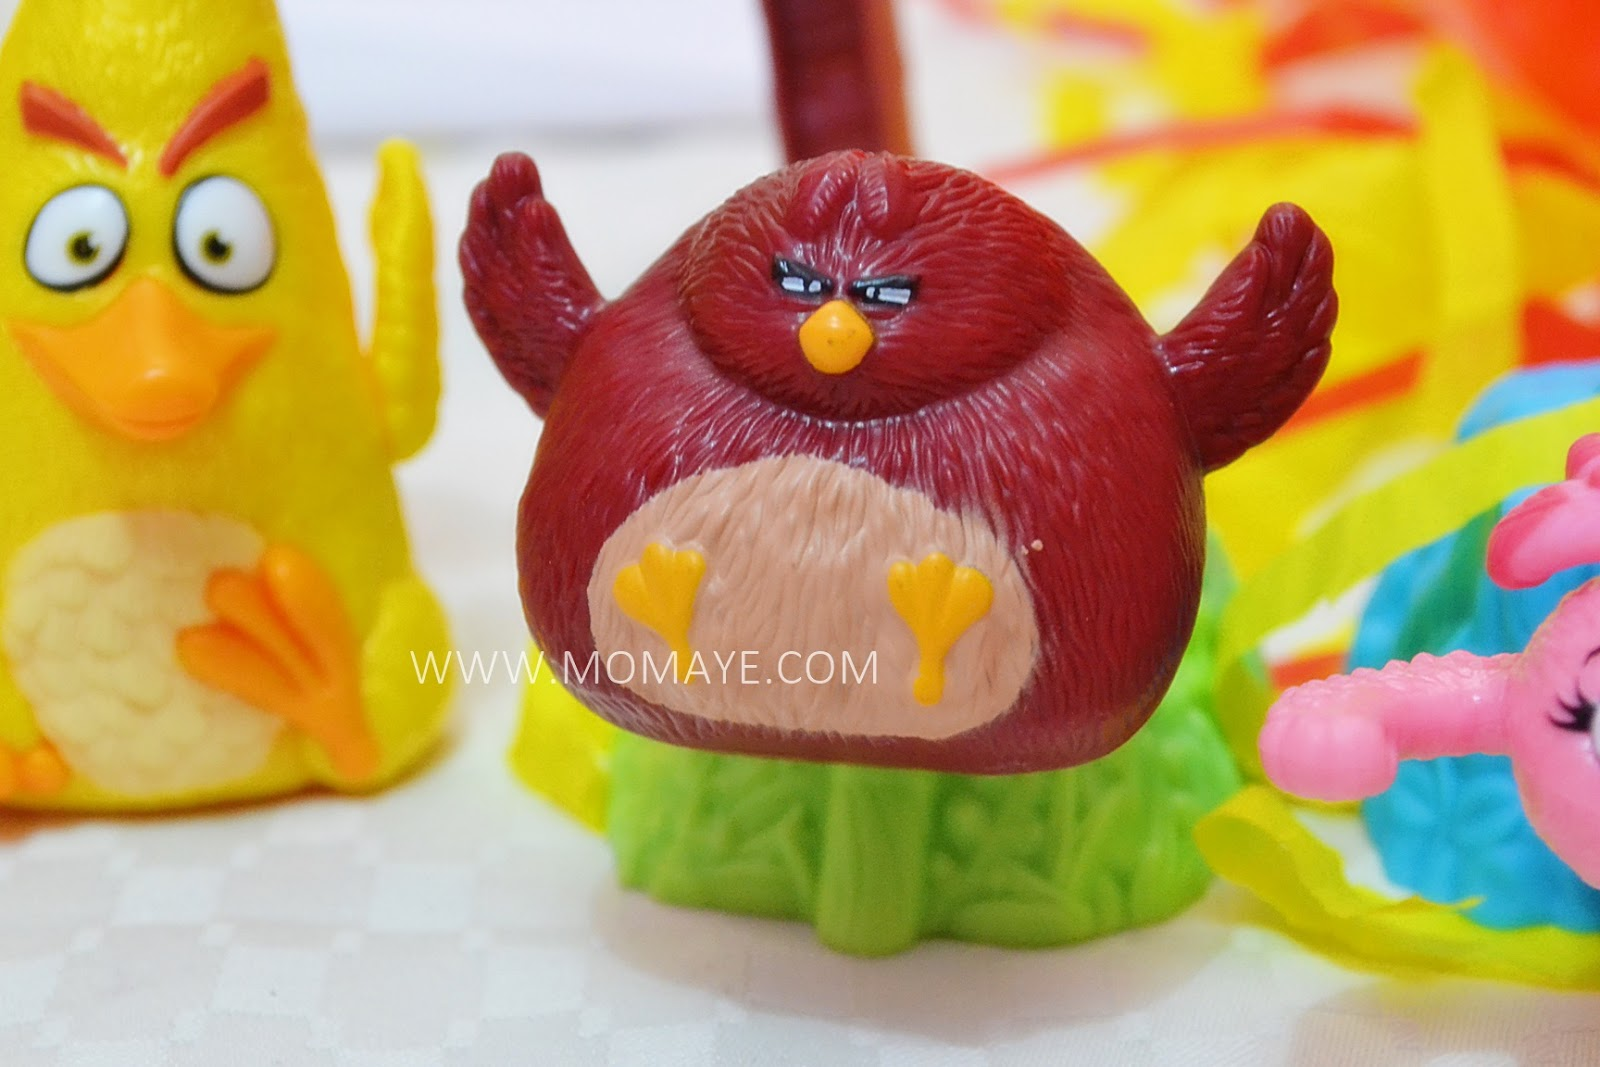 Anger Bird Toy : The mcdohappymeal angry birds toys